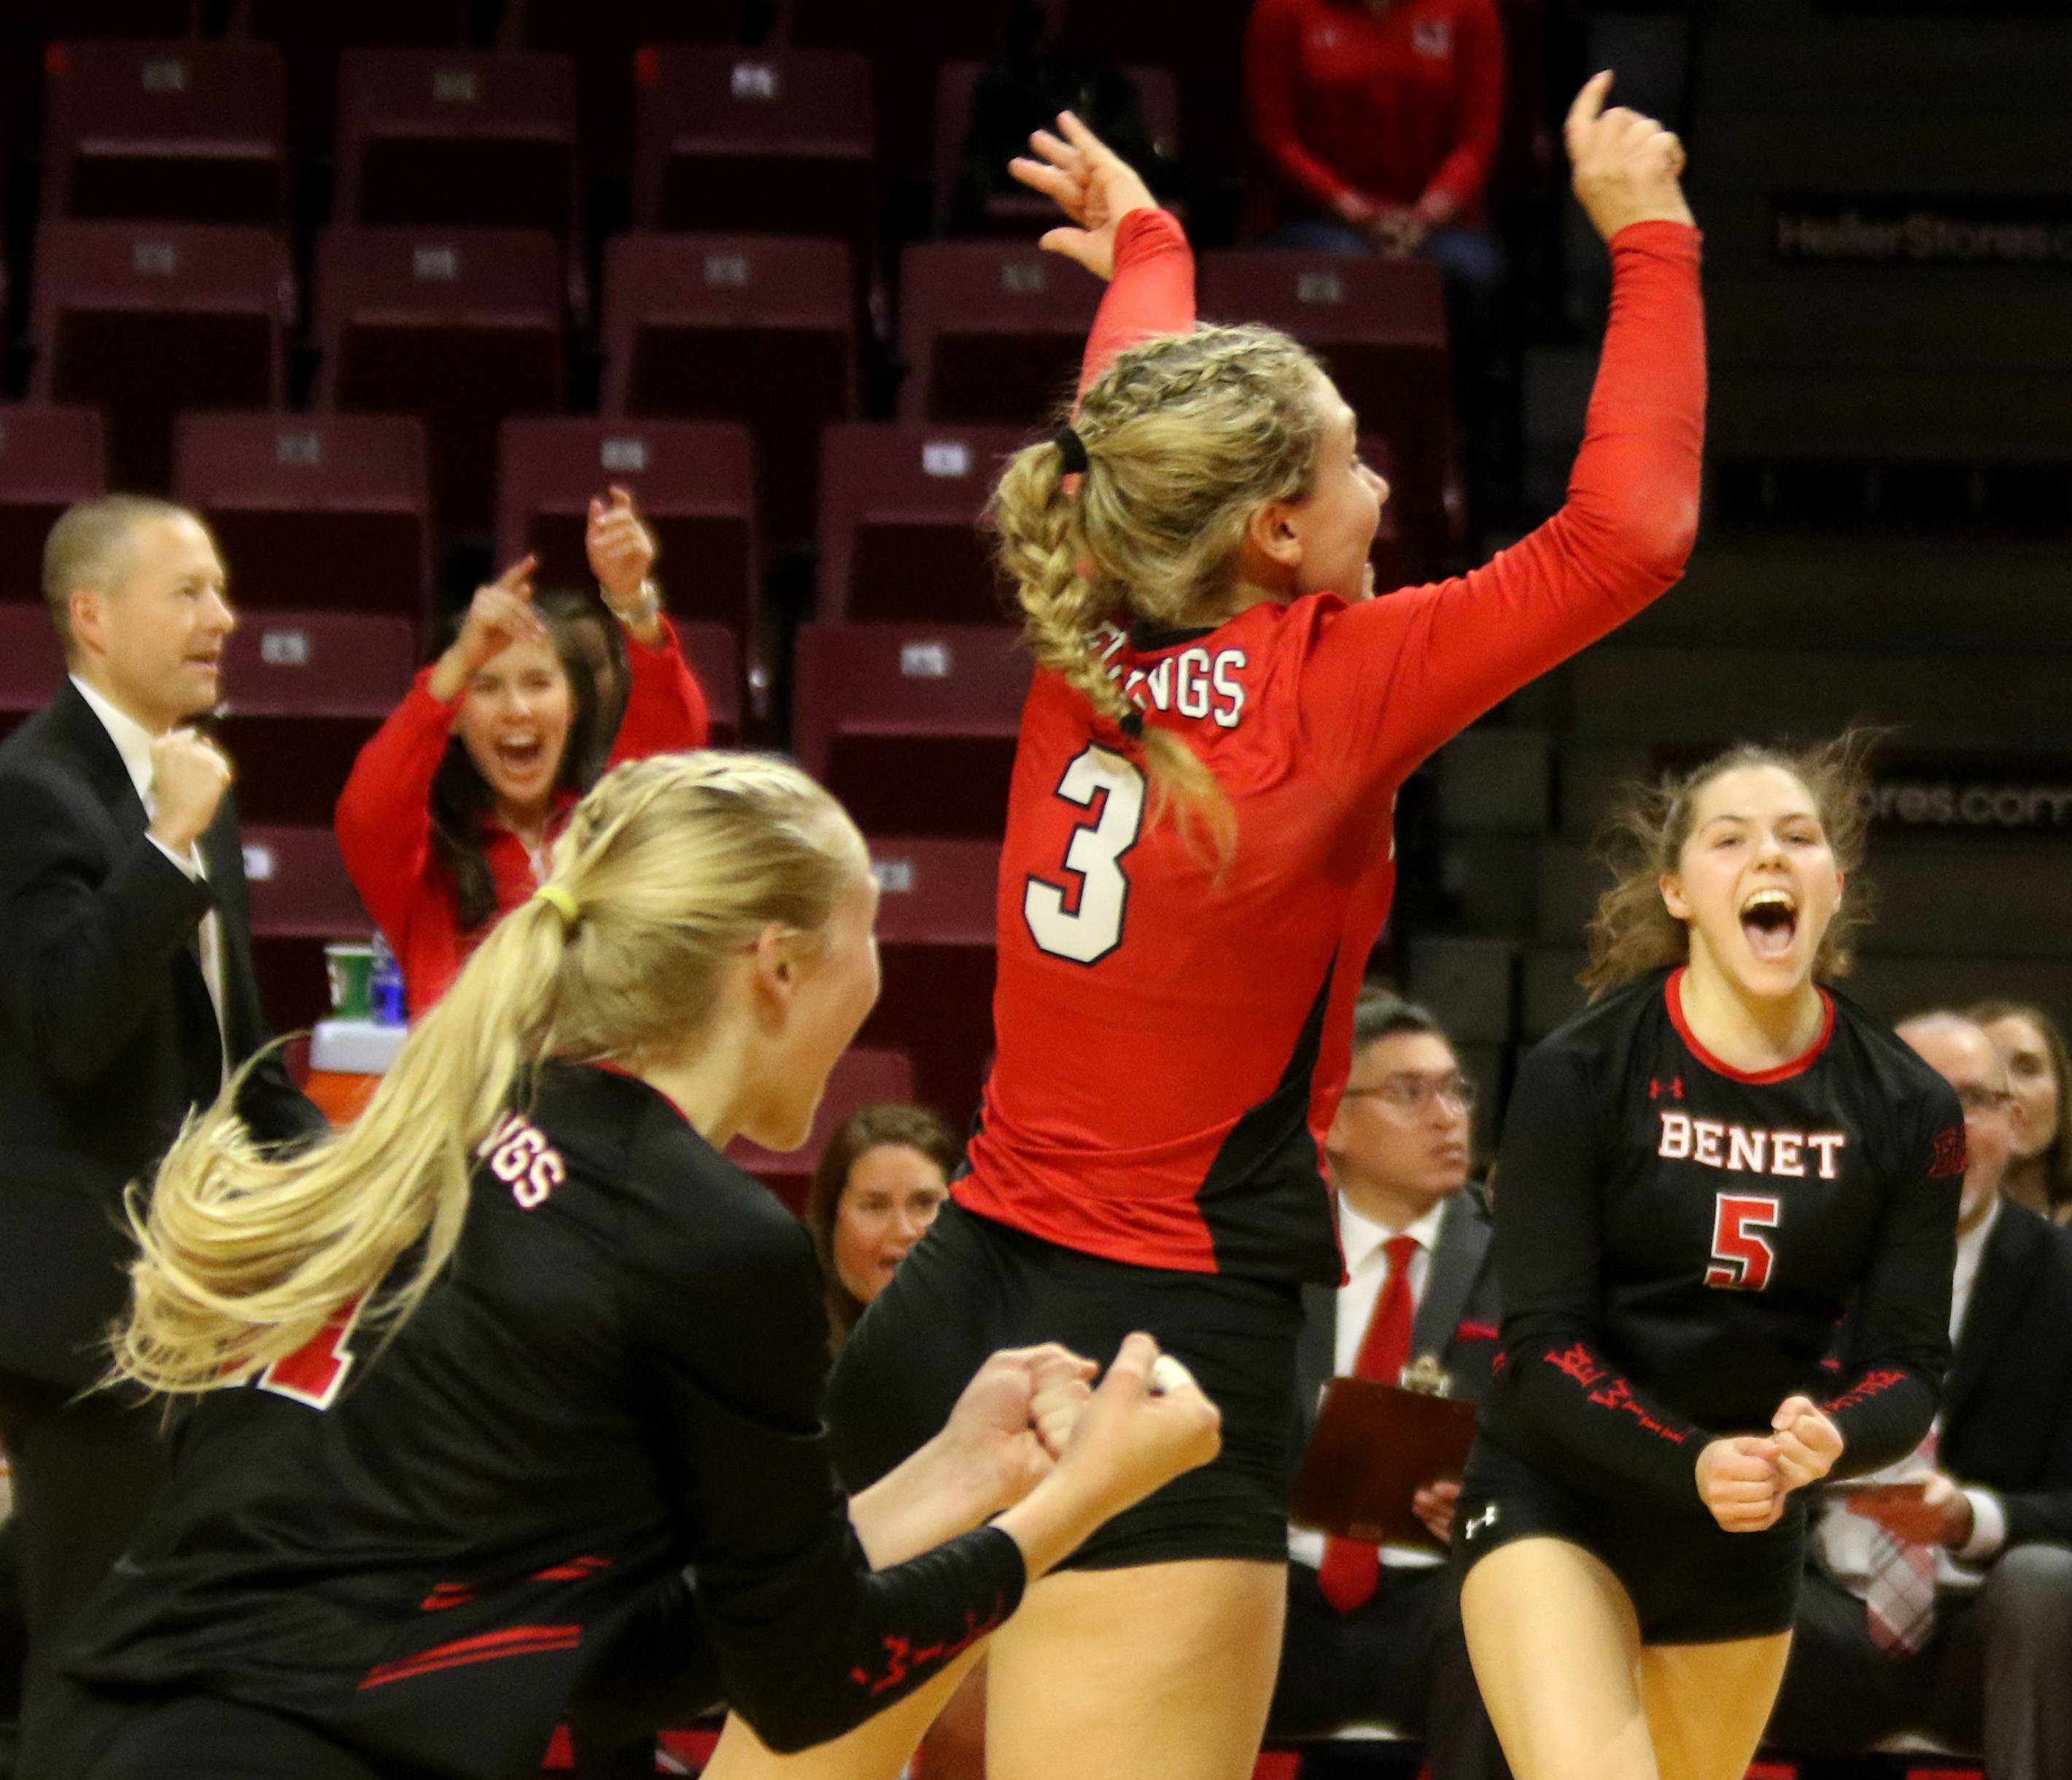 Benet Academy's Redwings celebrate a two-set victory over Prairie Ridge in the third-place game of the Class 4A state finals in girls volleyball on Saturday night at Redbird Arena on the campus of Illinois State University. At center is Hattie Monson and at right is Caroline Gard.